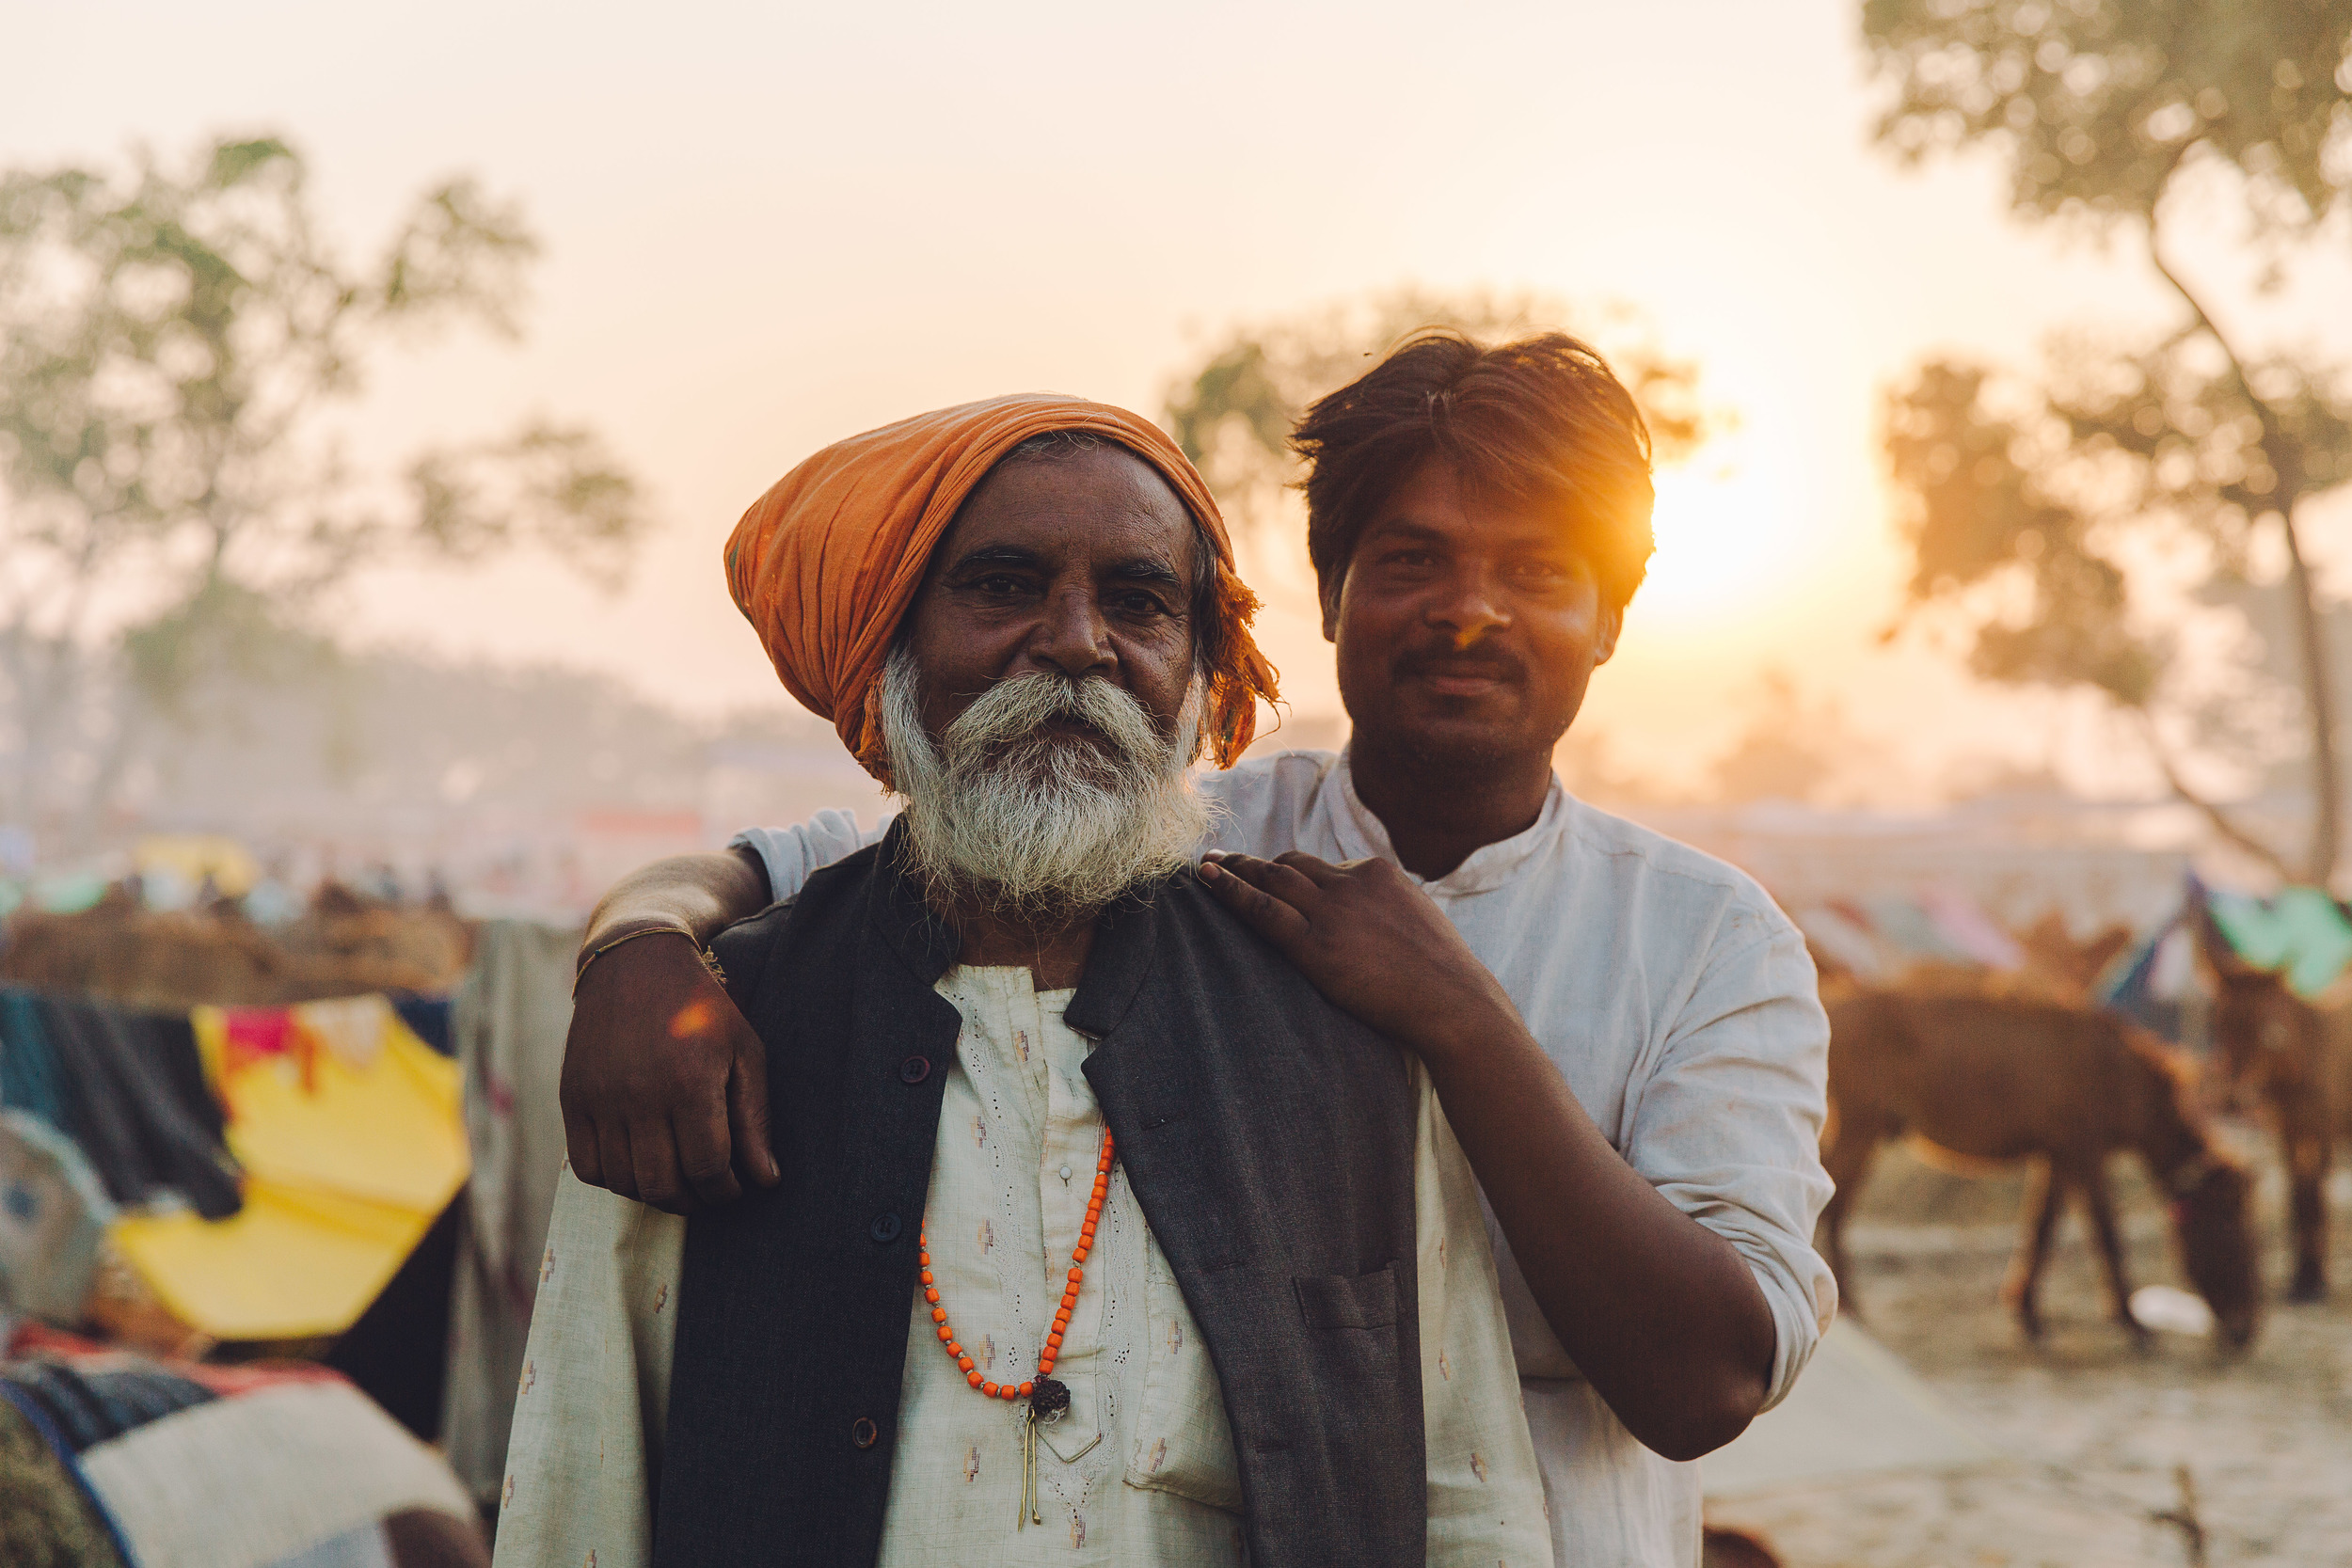 The changing faces of India